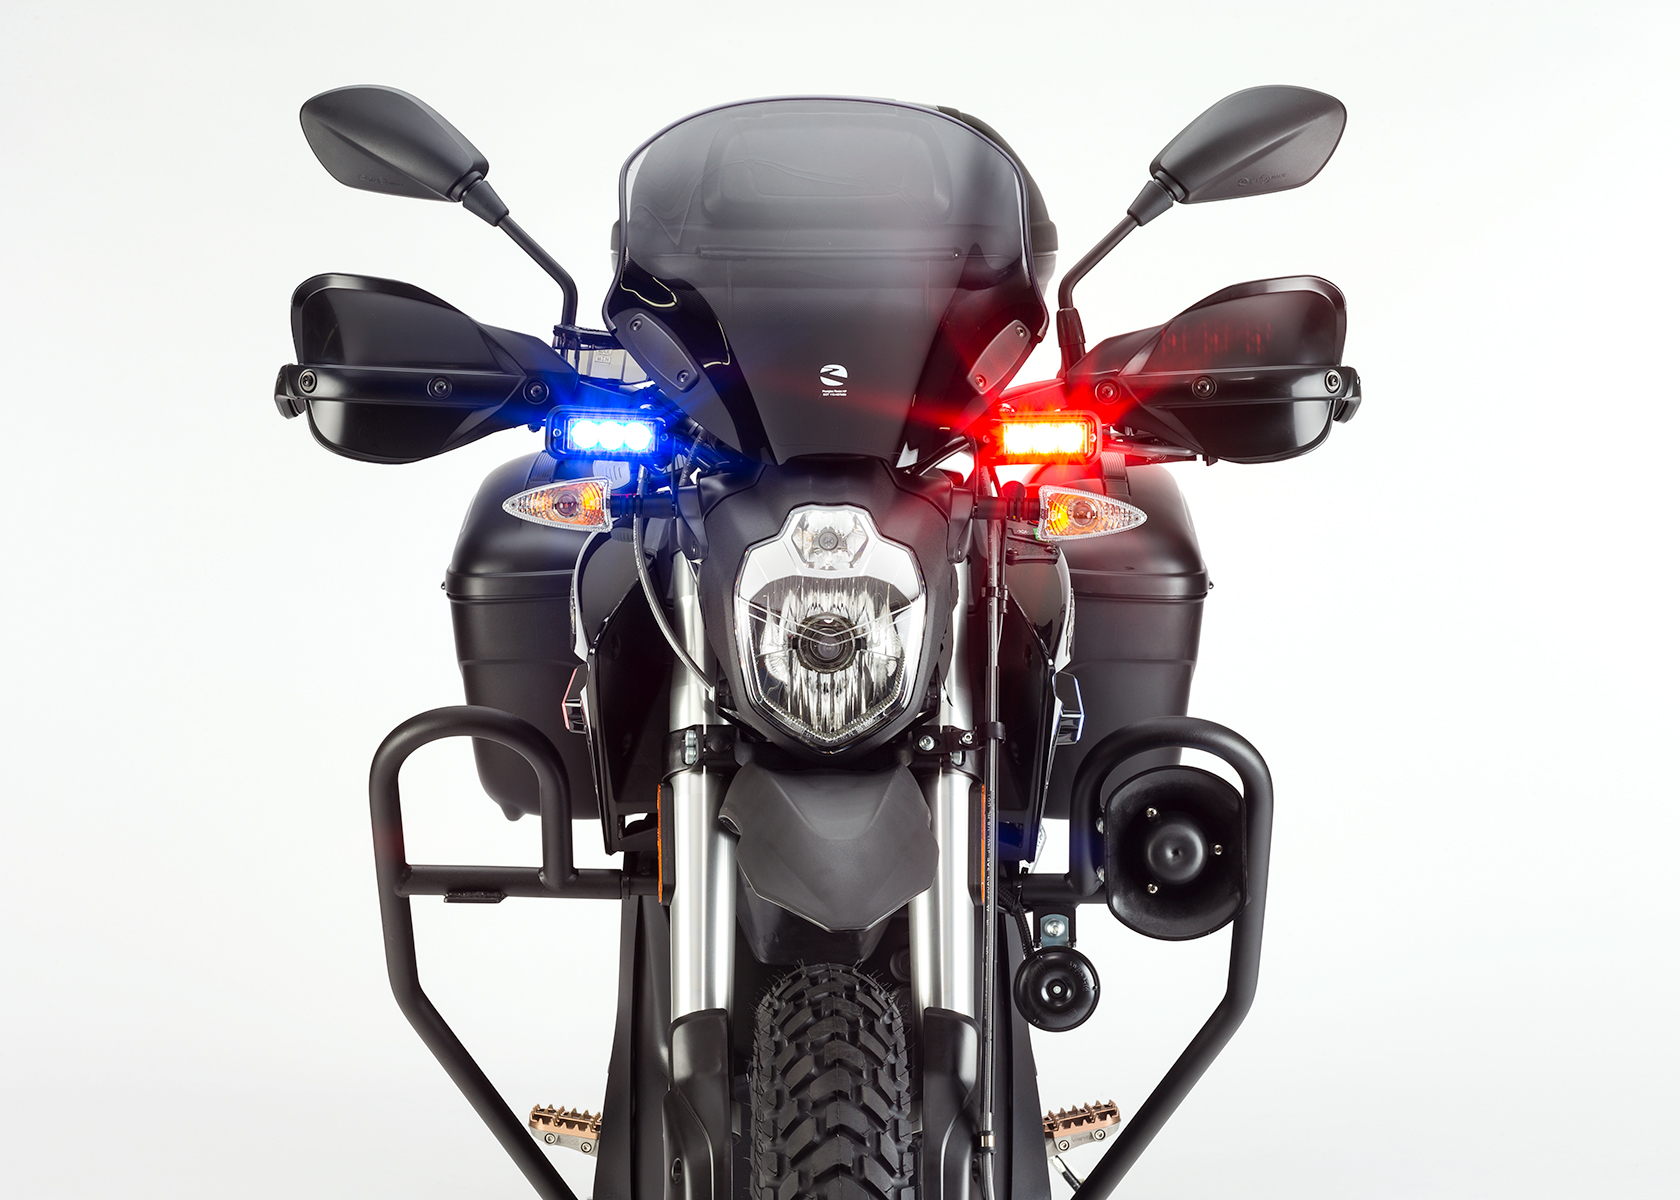 2015 Zero Police Electric Motorcycle: Front view, Lights on